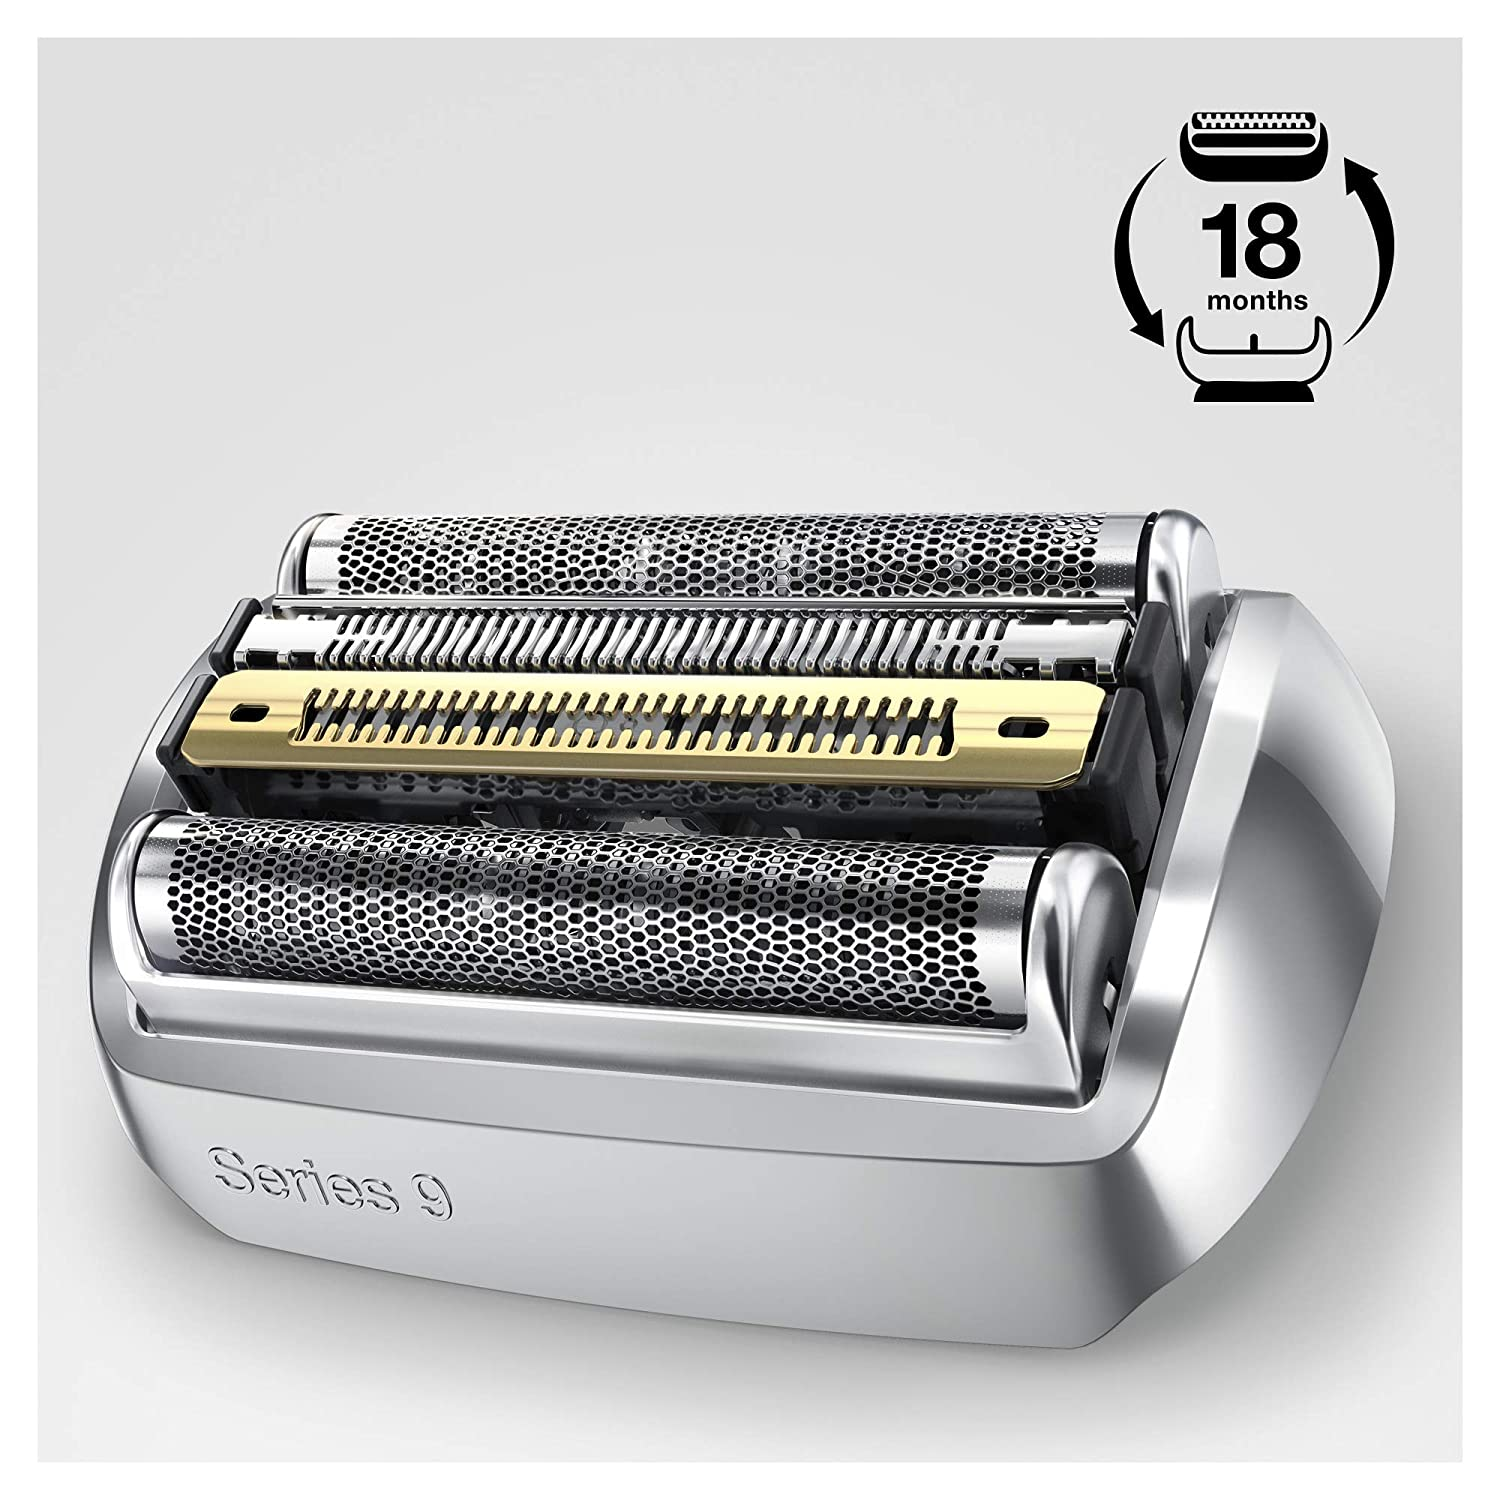 Braun Shaver Replacement Part 92S Silver - Compatible with Series 9 Shavers enlarge